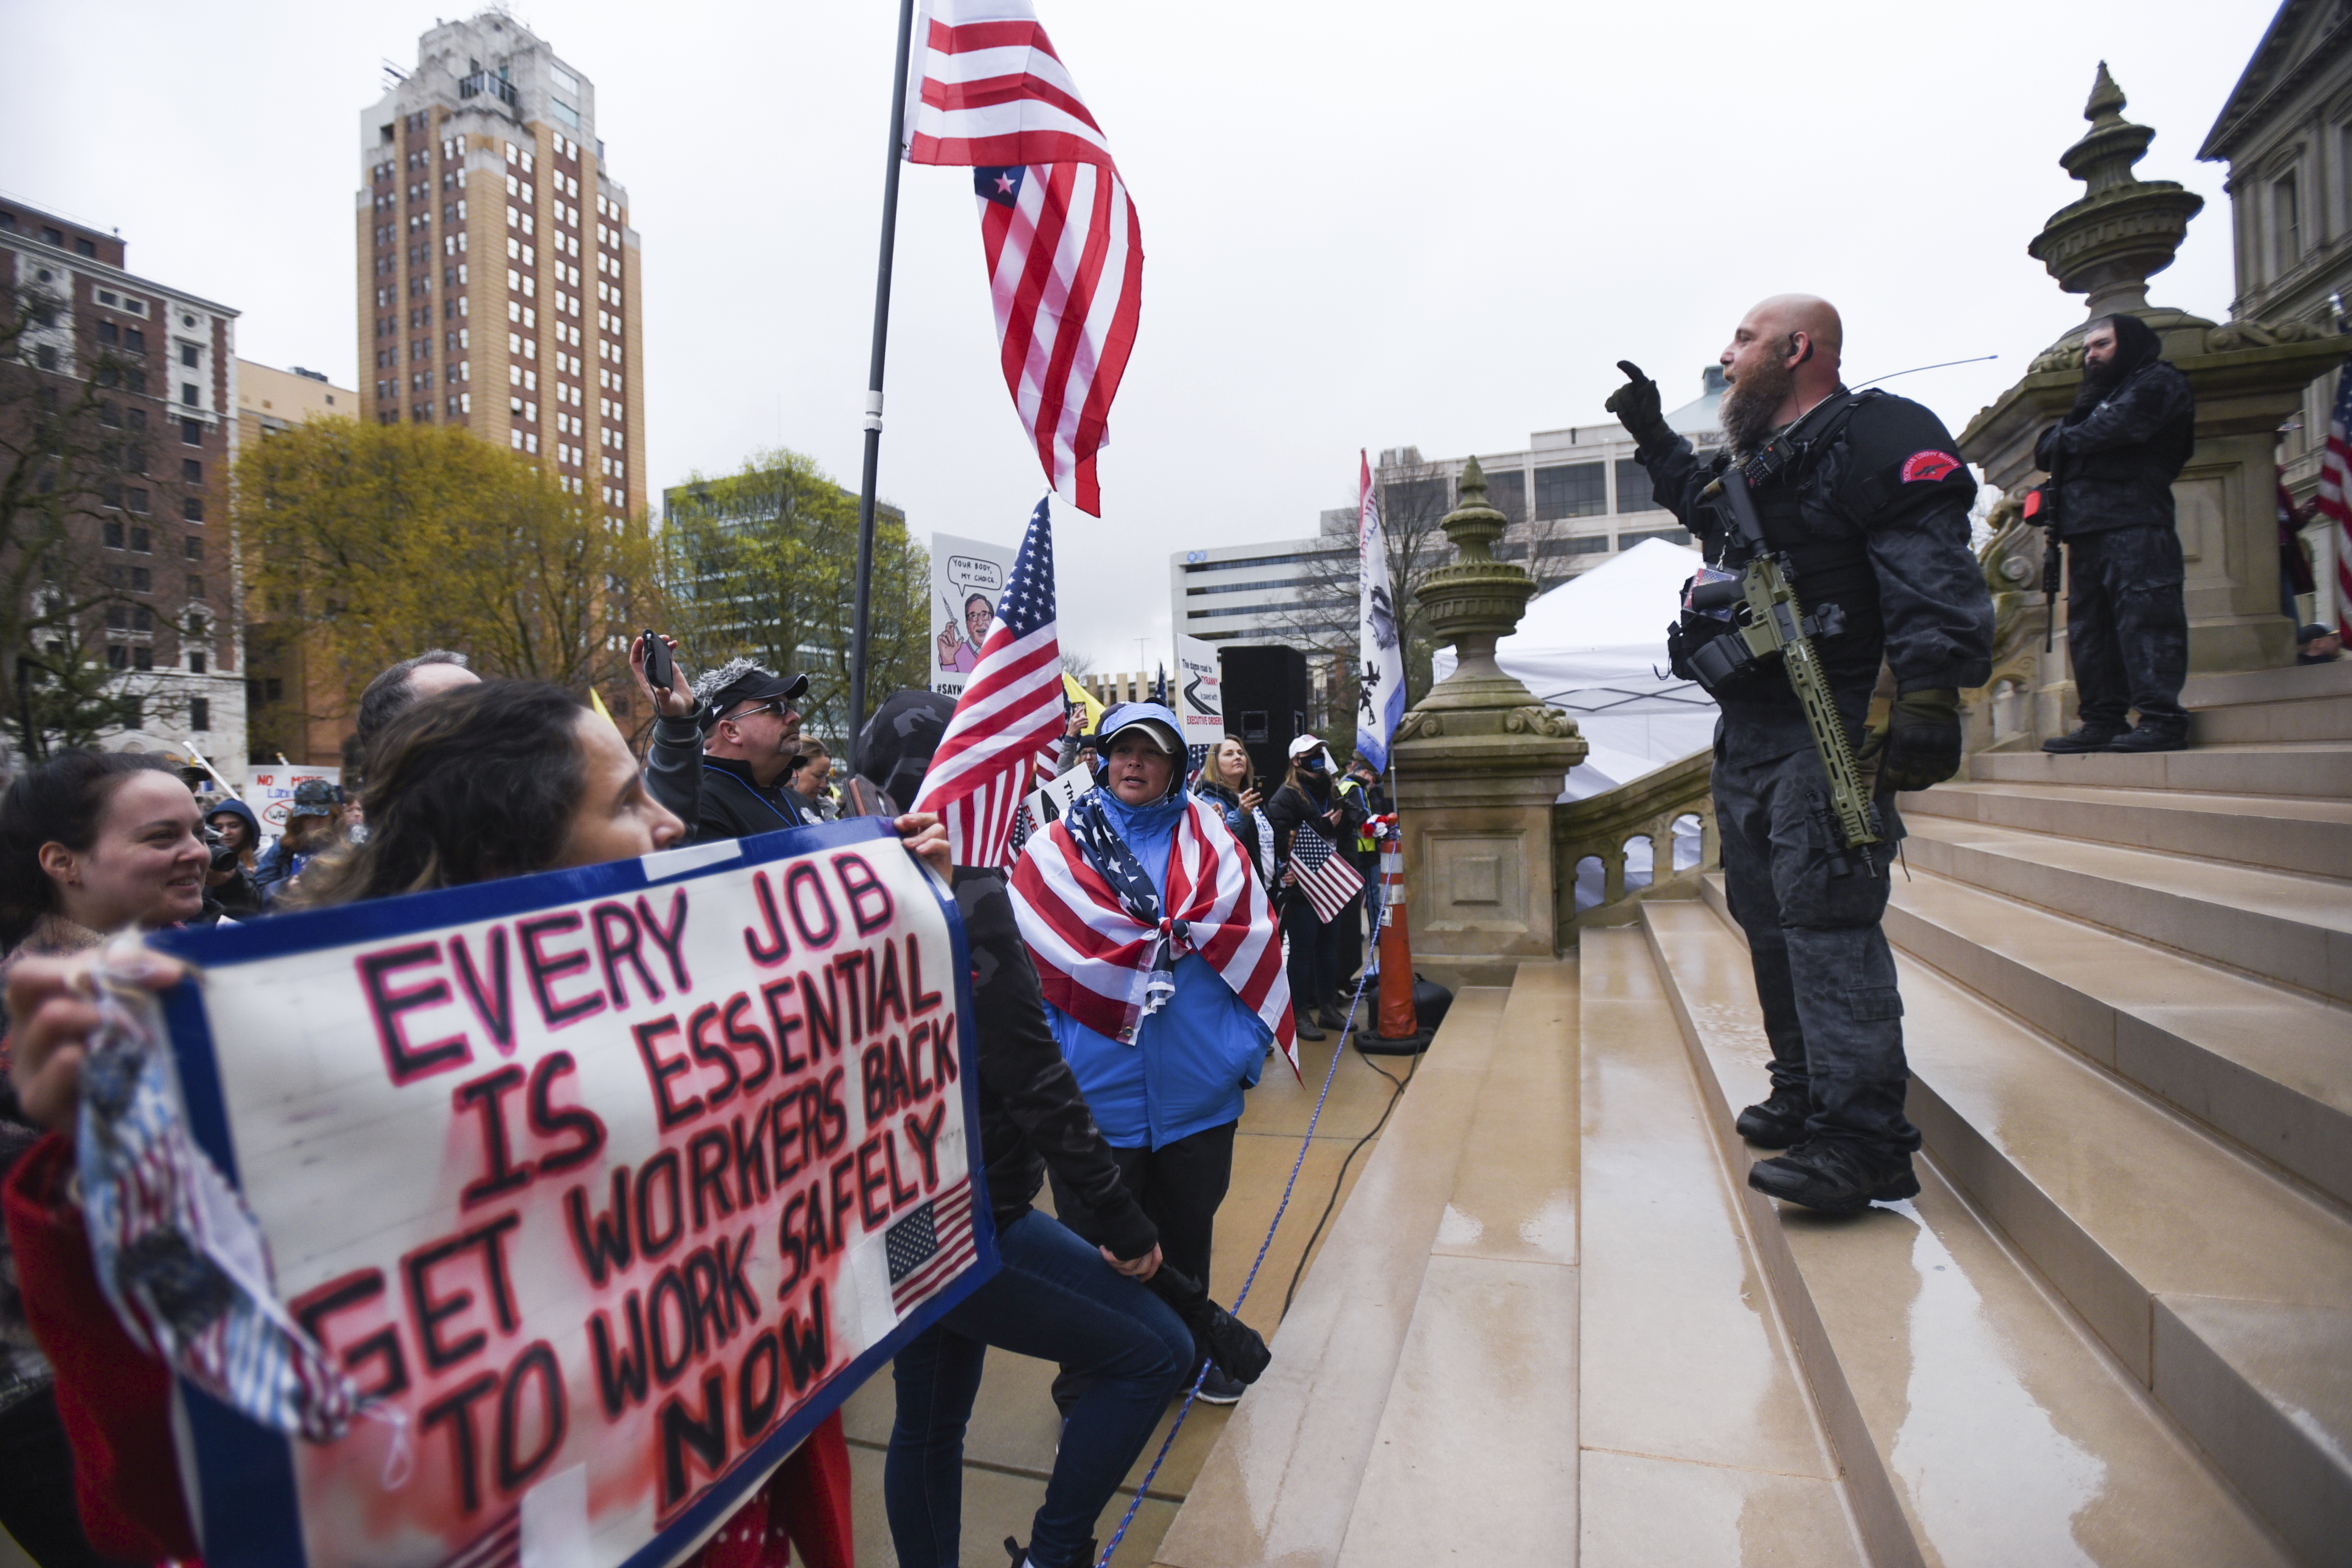 Members of the Michigan Liberty Militia, including Phil Robinson, right, join protesters at a rally at the state Capitol in Lansing, Mich., Thursday, April 30, 2020.